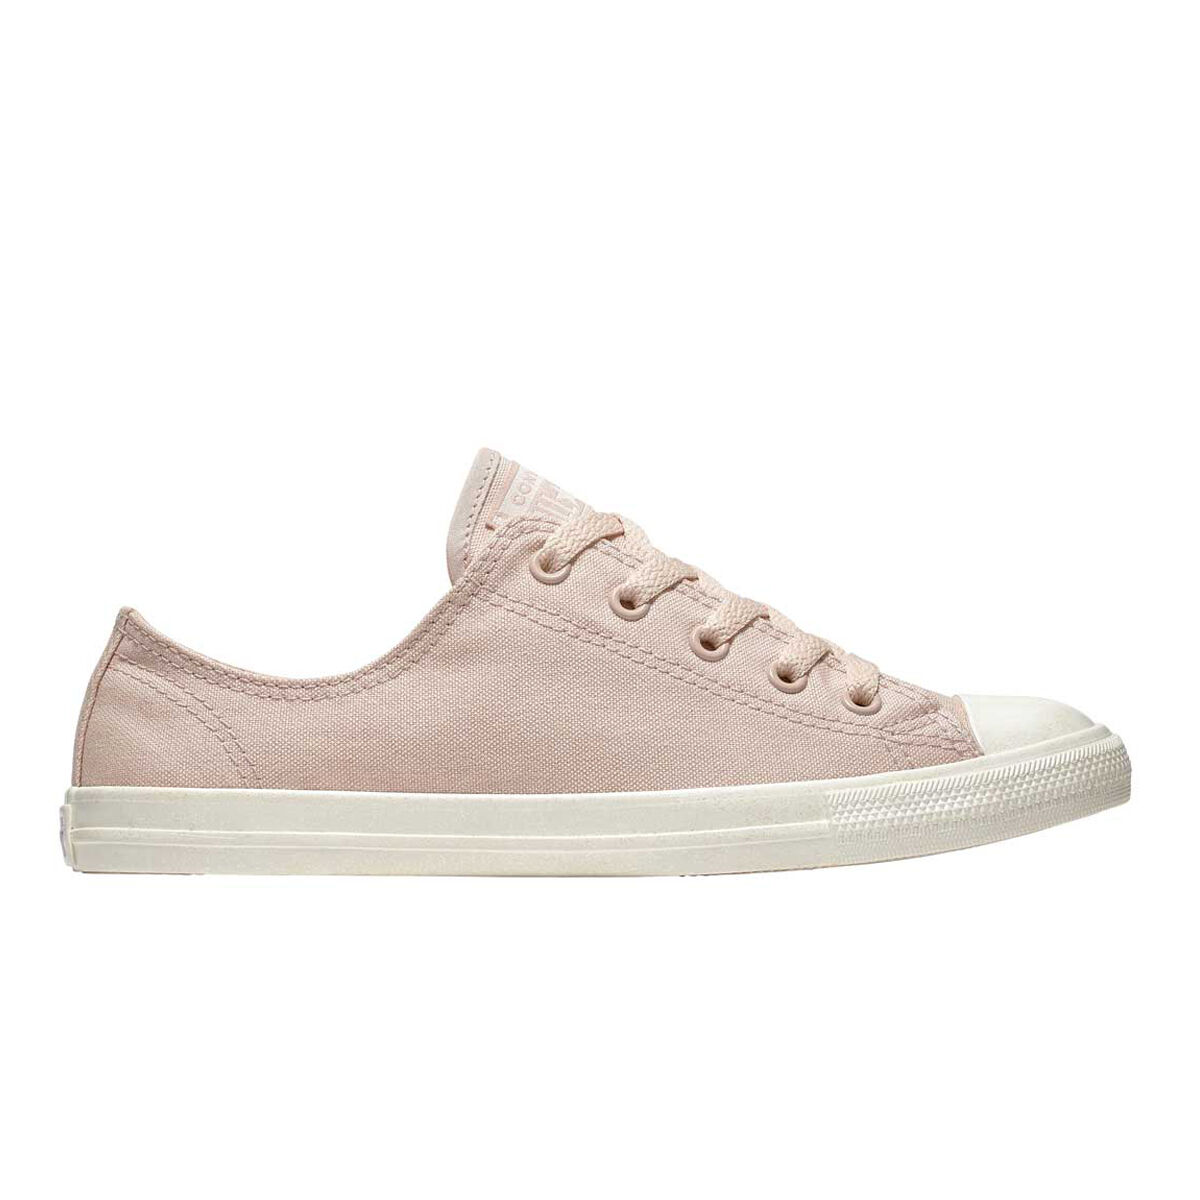 Converse Cuck Taylor All Star Dainty Ox Womens Casual Shoes